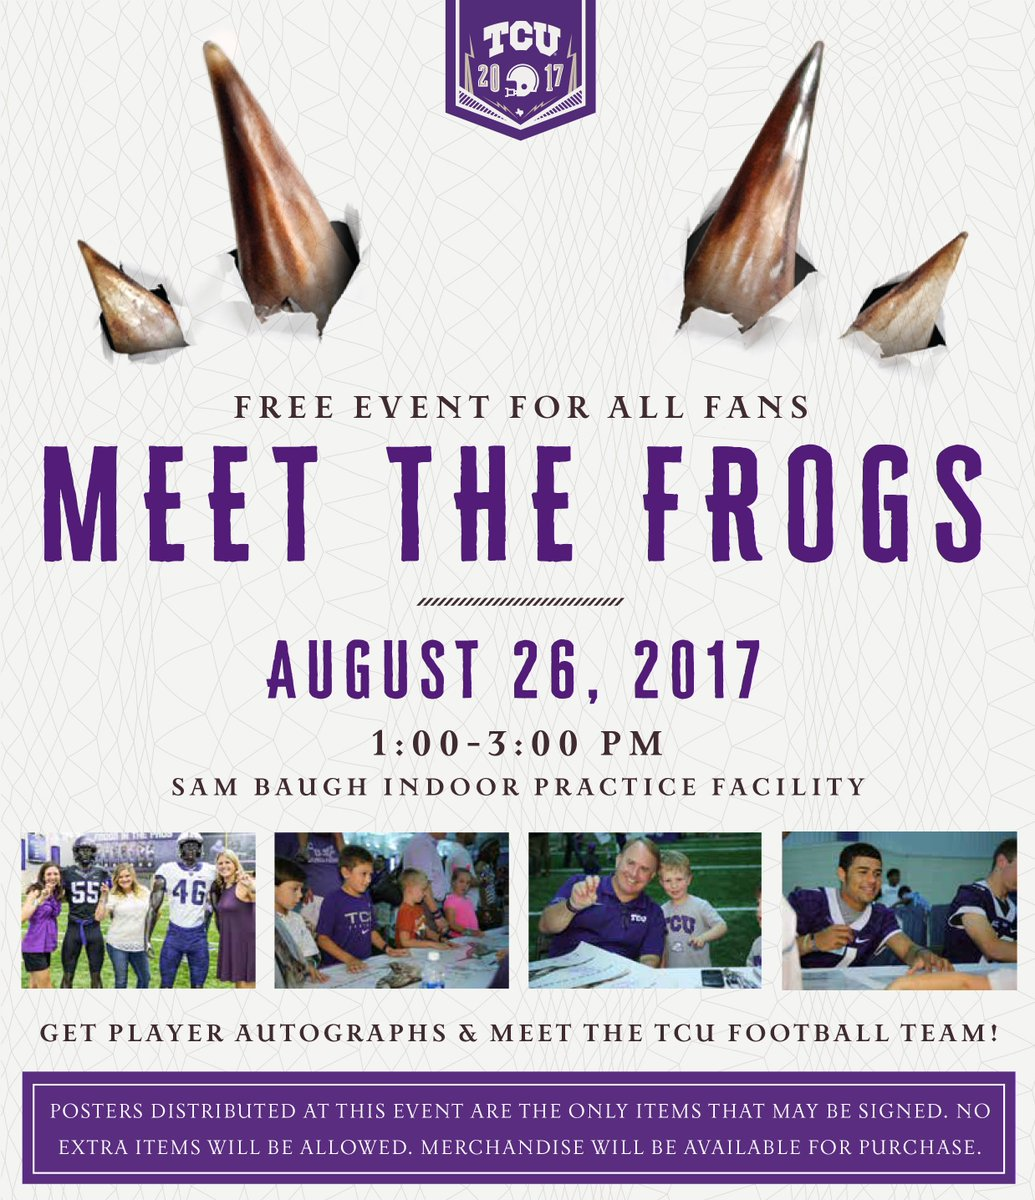 Meet The Frogs Killerfrogs Com Lowering Office Productivity